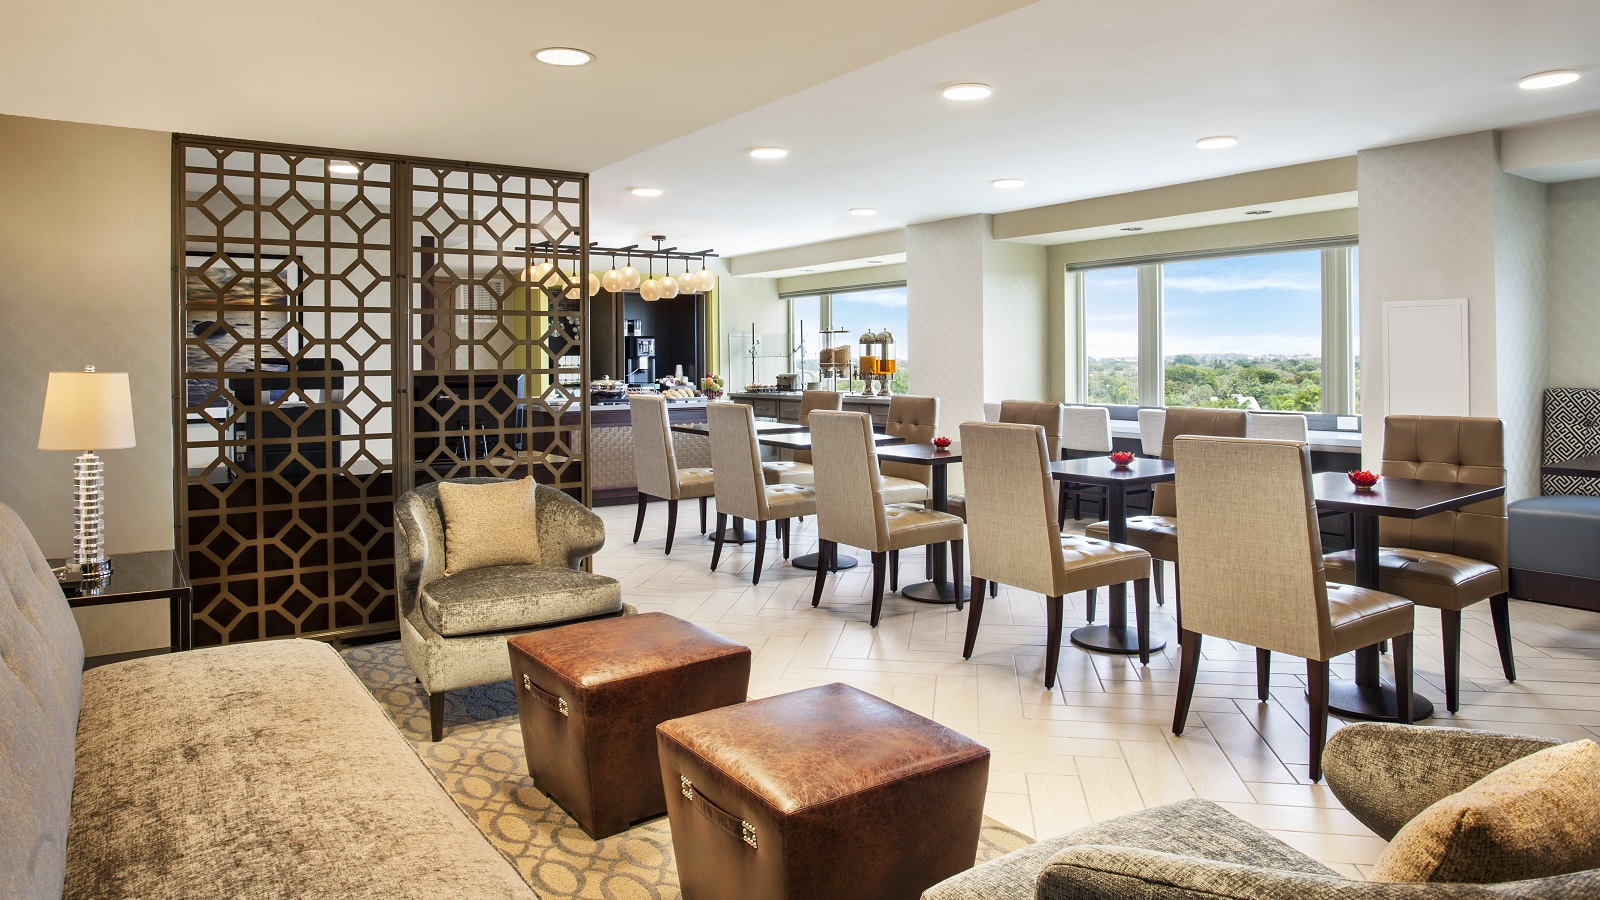 Sheraton Club Lounge at Sheraton Suites Fort Lauderdale Plantation